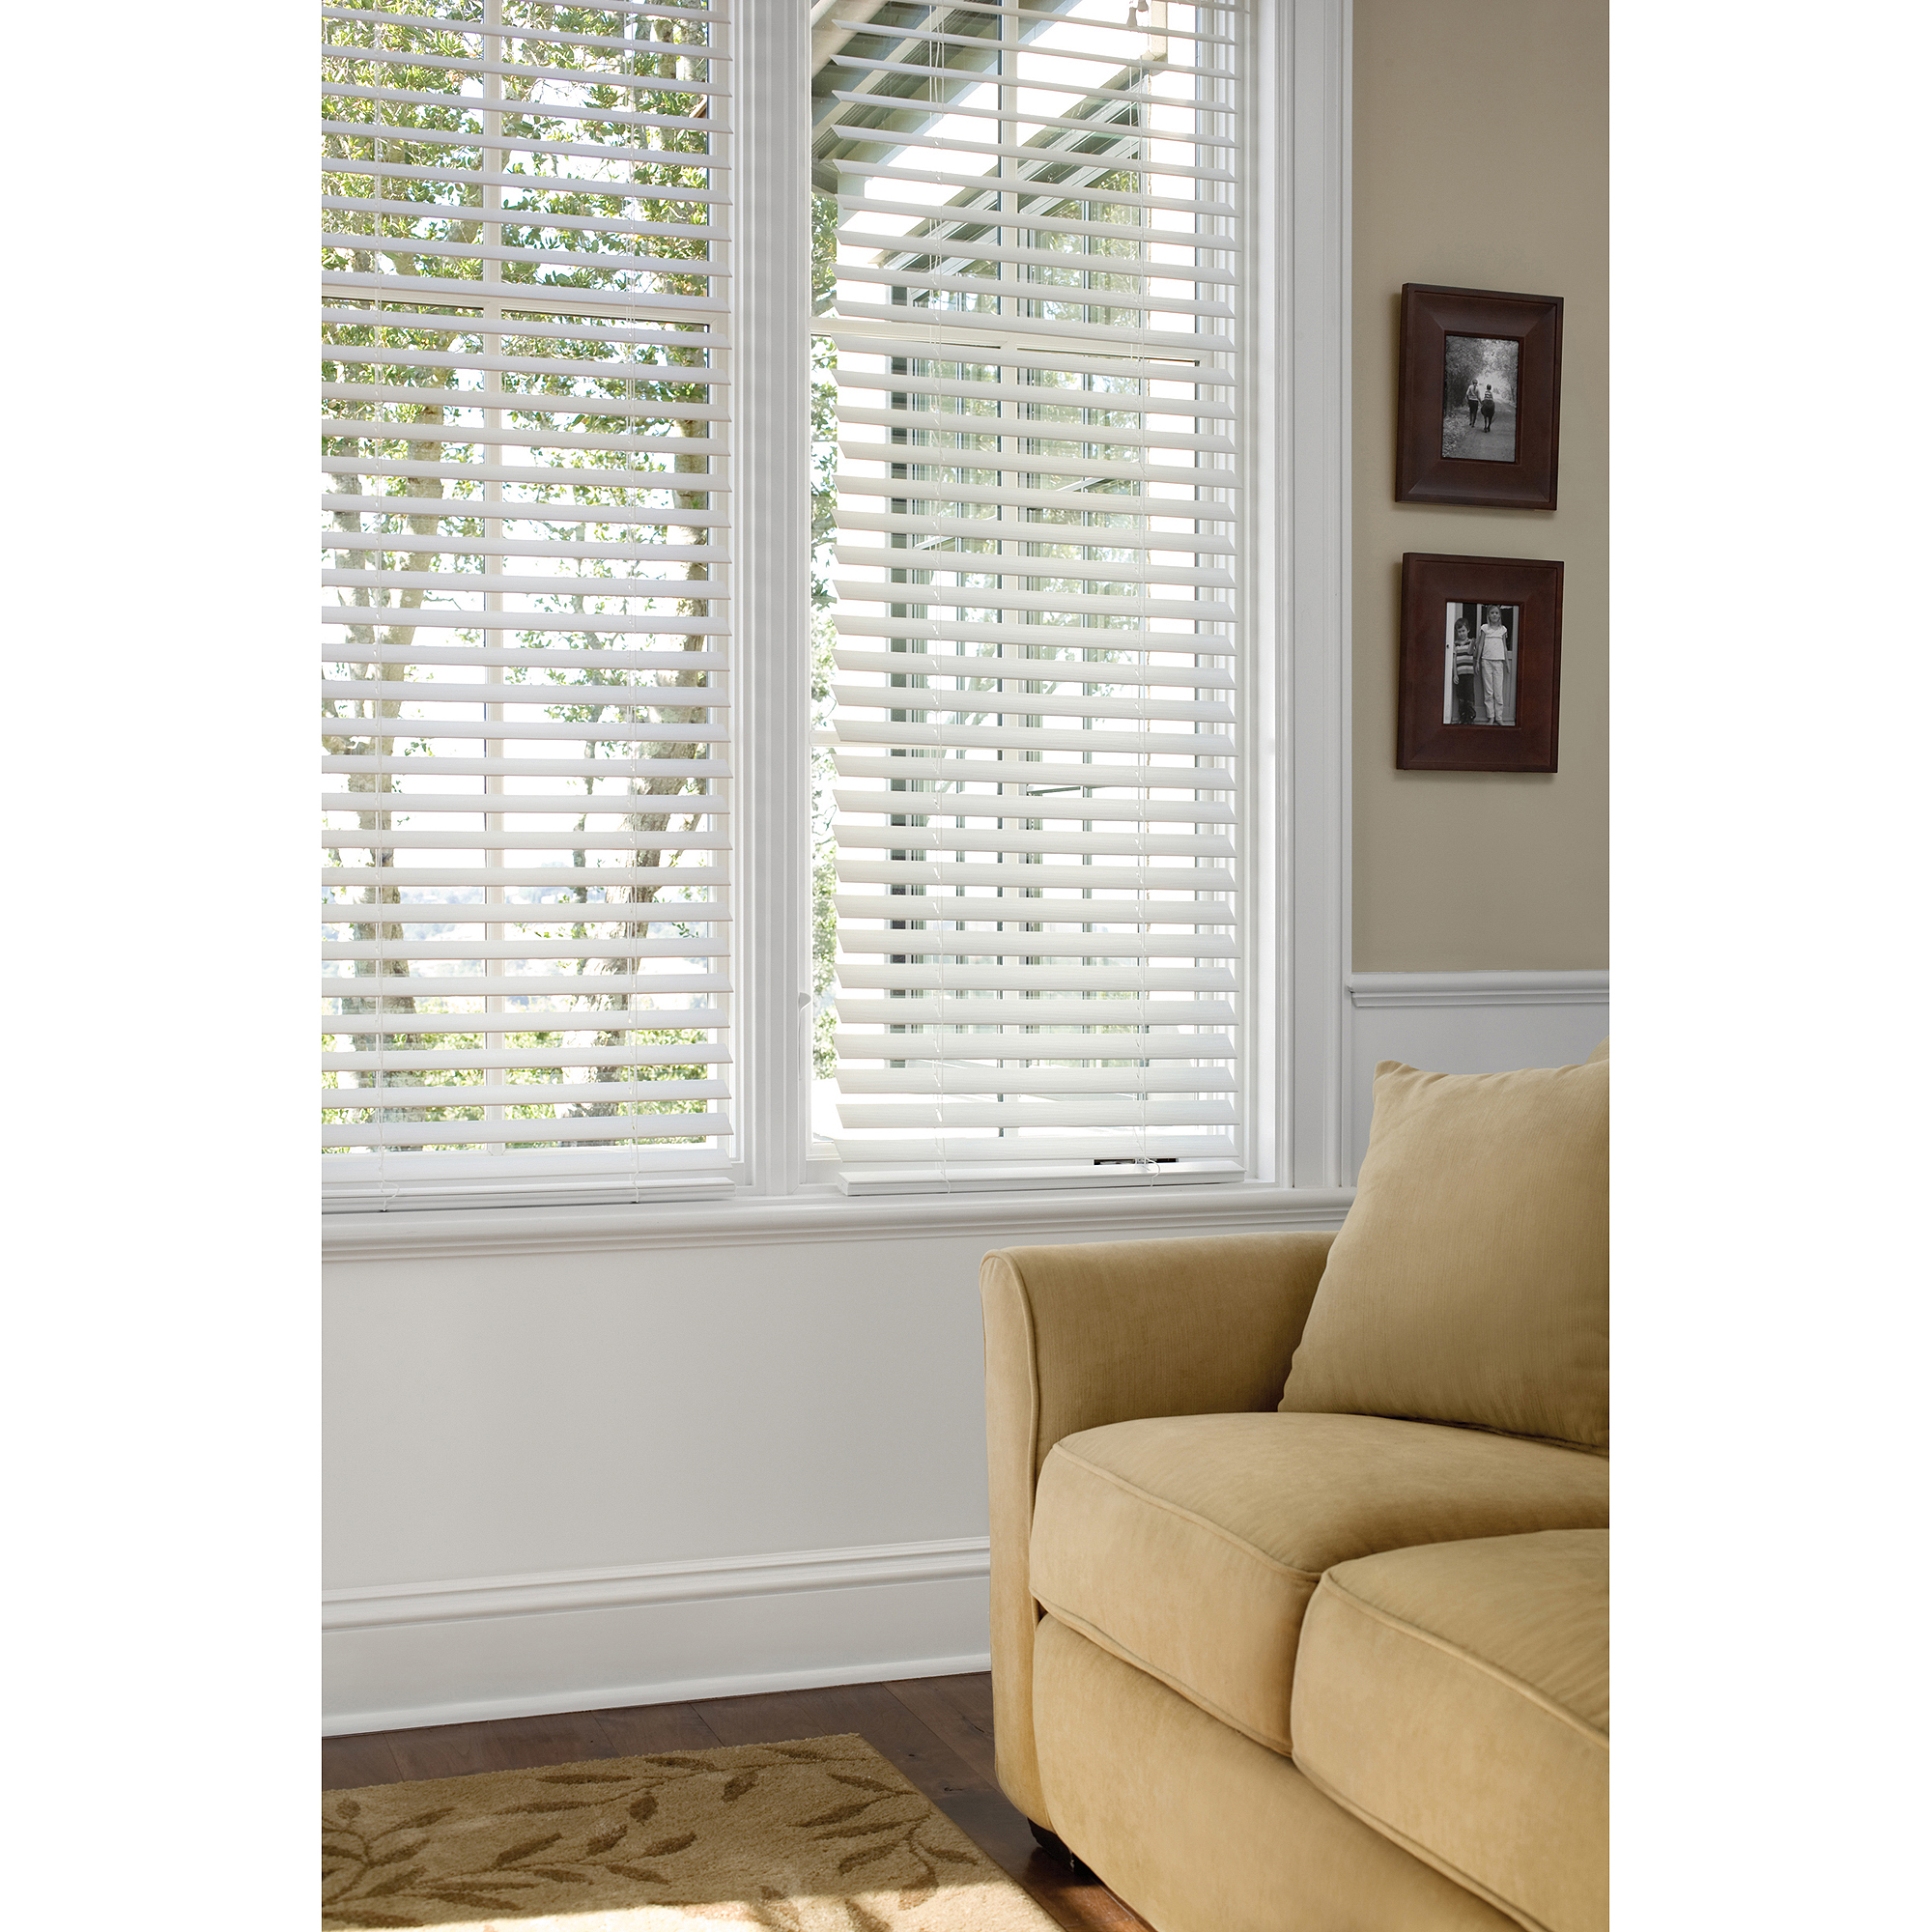 Cafe curtains for bedroom - Better Homes And Gardens 2 Faux Wood Blinds White